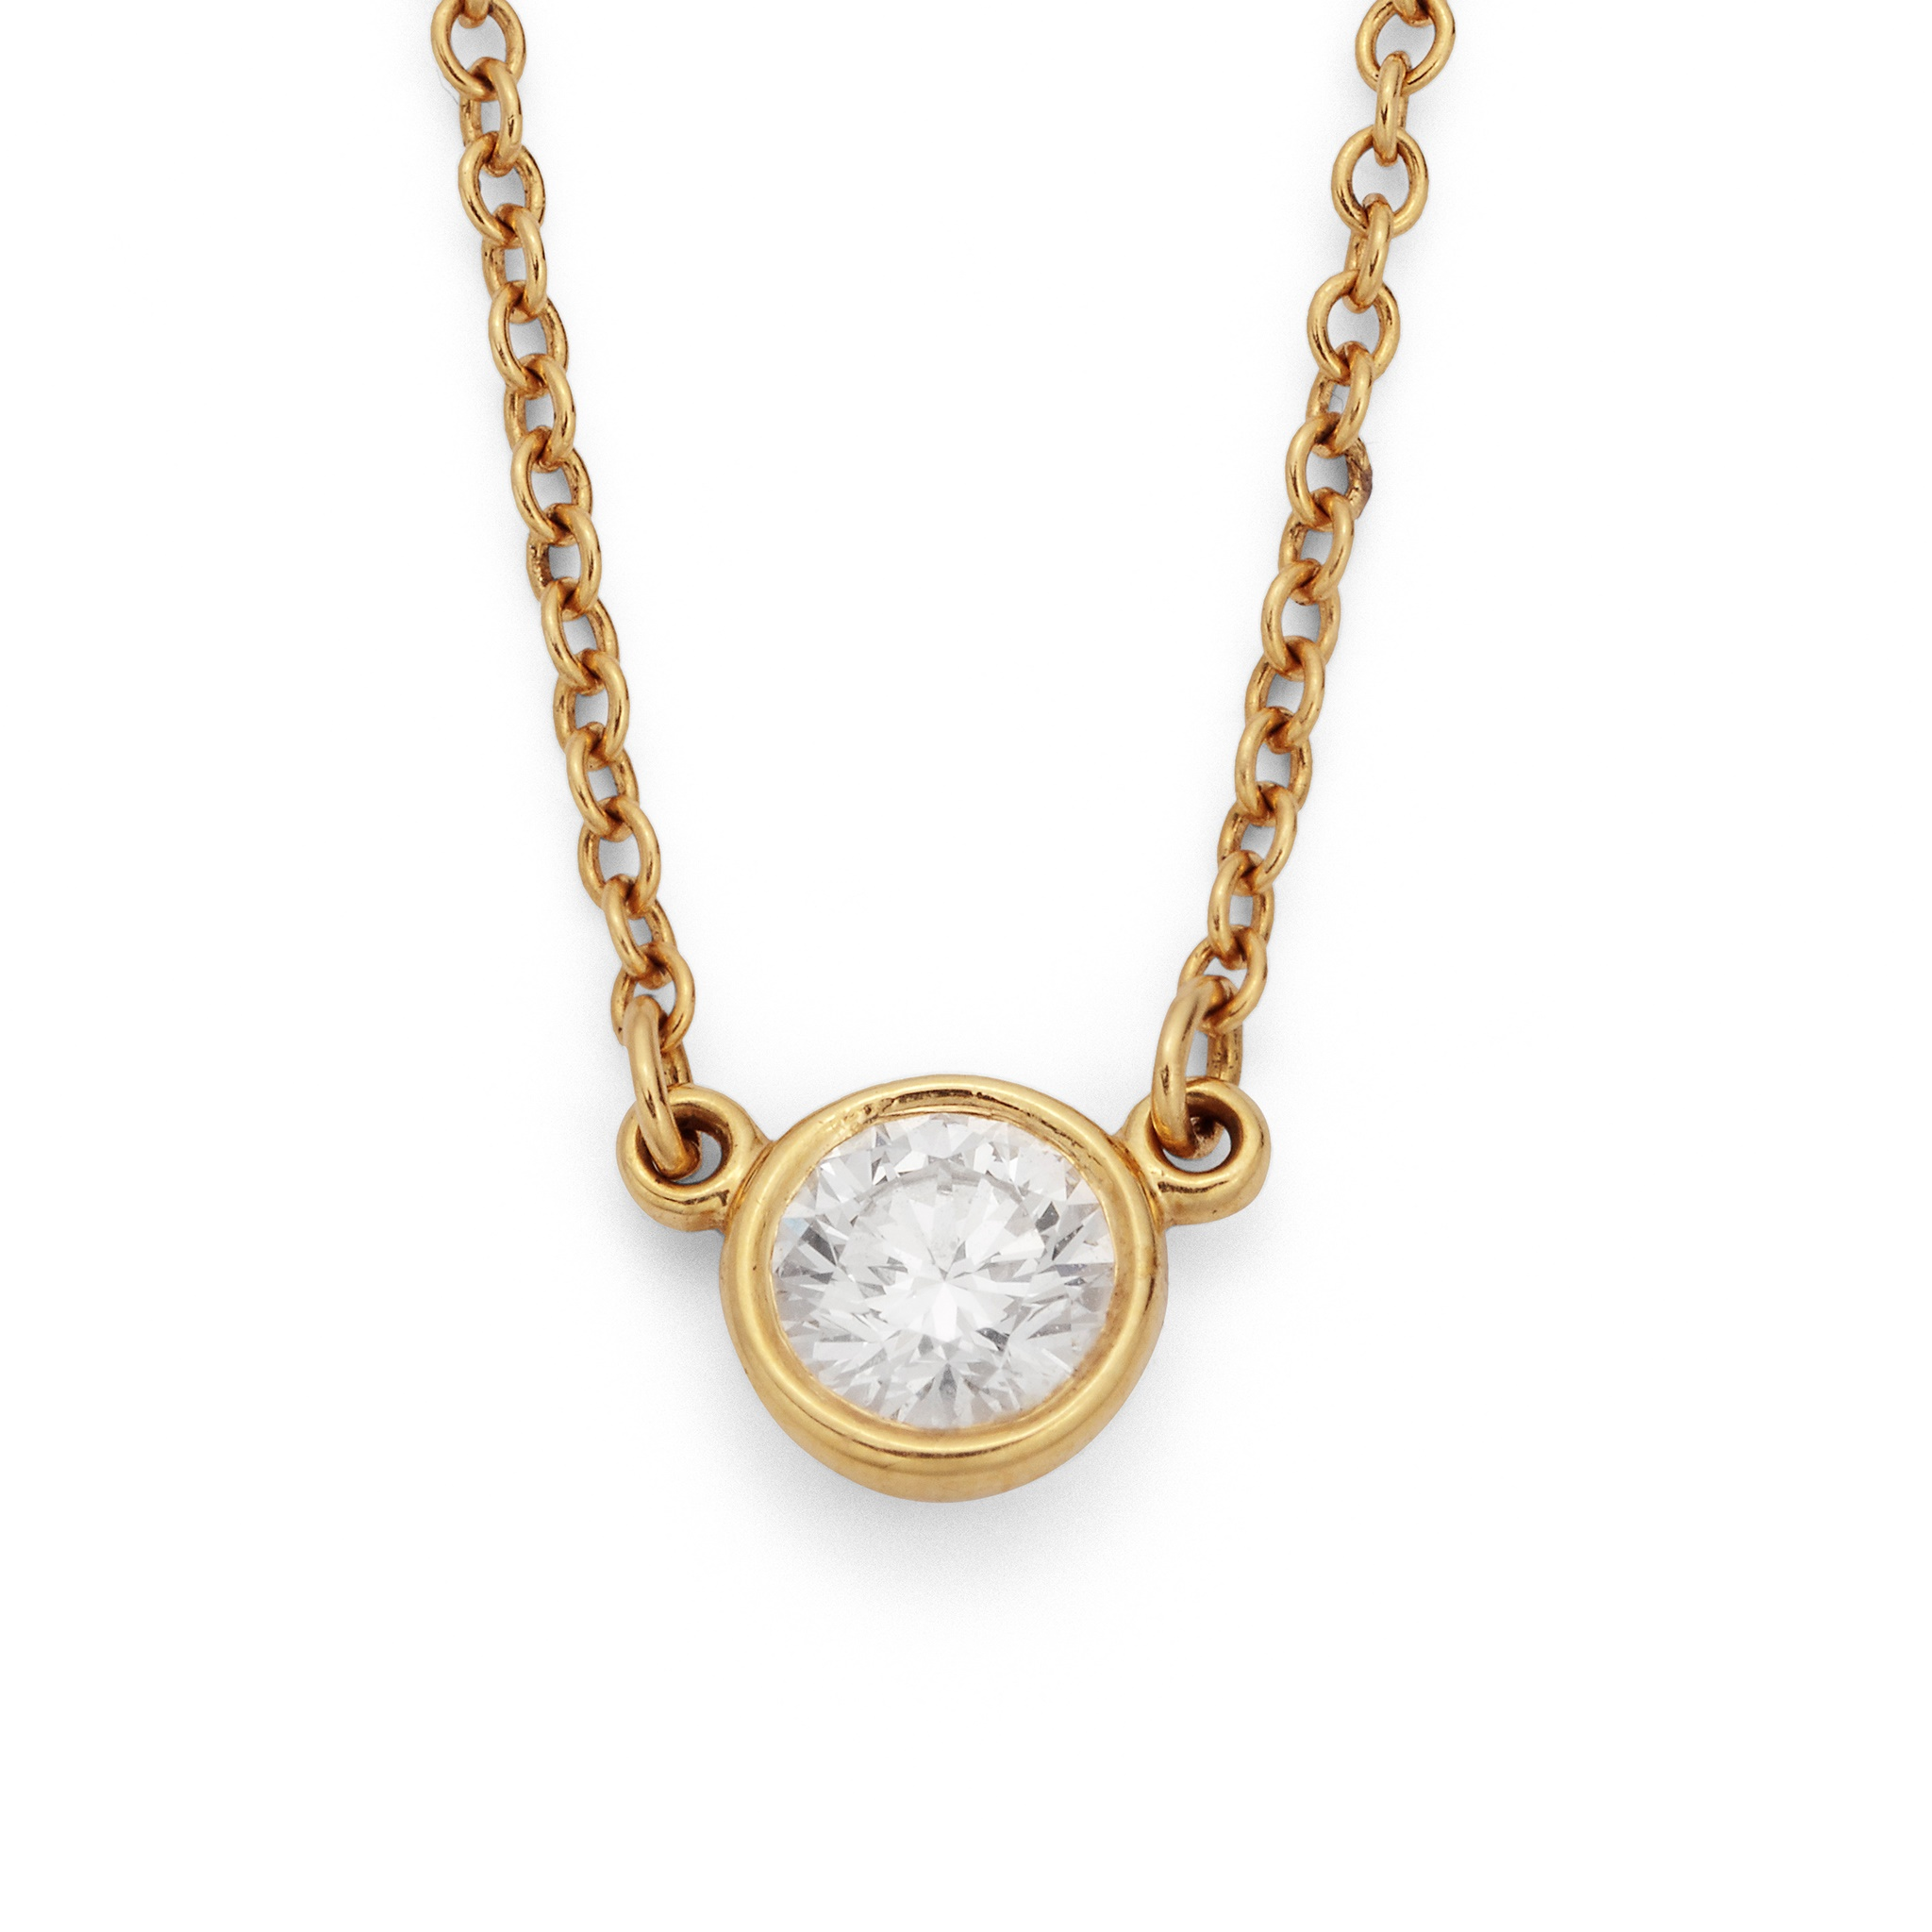 A 'Diamonds by the Yard' pendant necklace, by Elsa Peretti for Tiffany & Co. Collet-set with a